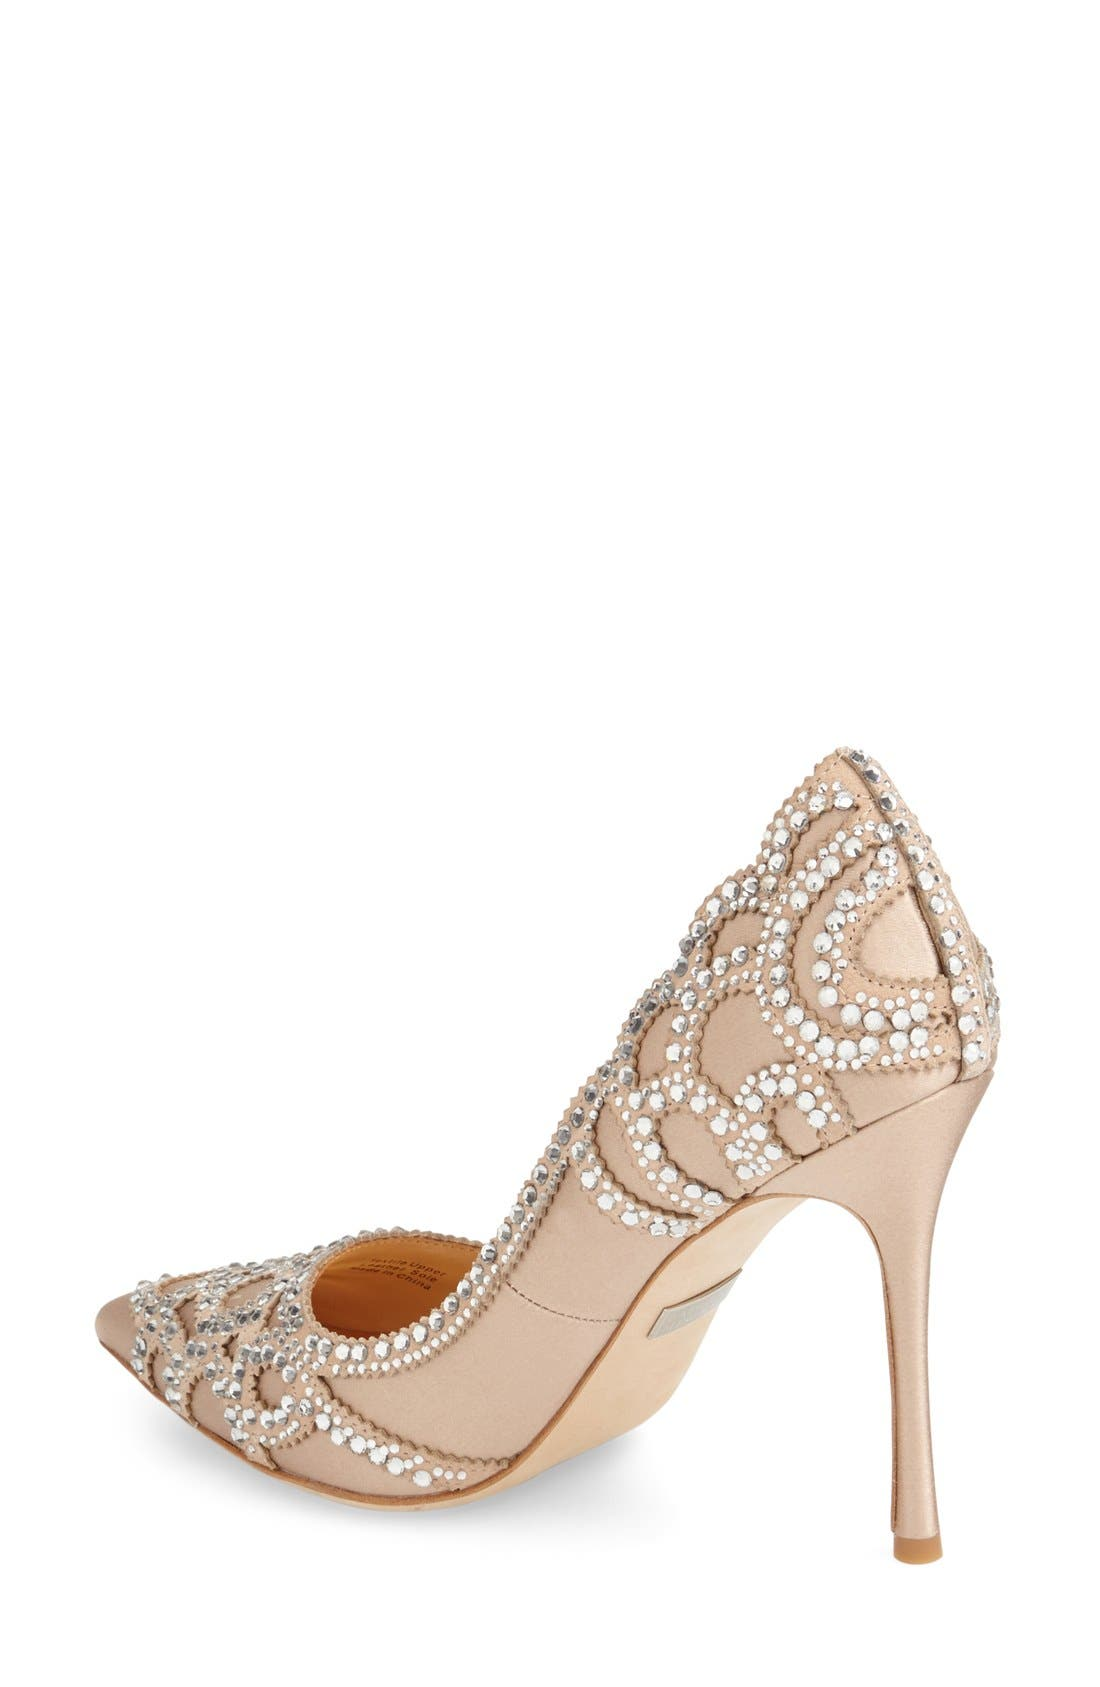 Badgley Mischka 'Rouge' Pointy Toe Pump,                             Alternate thumbnail 3, color,                             LATTE SATIN